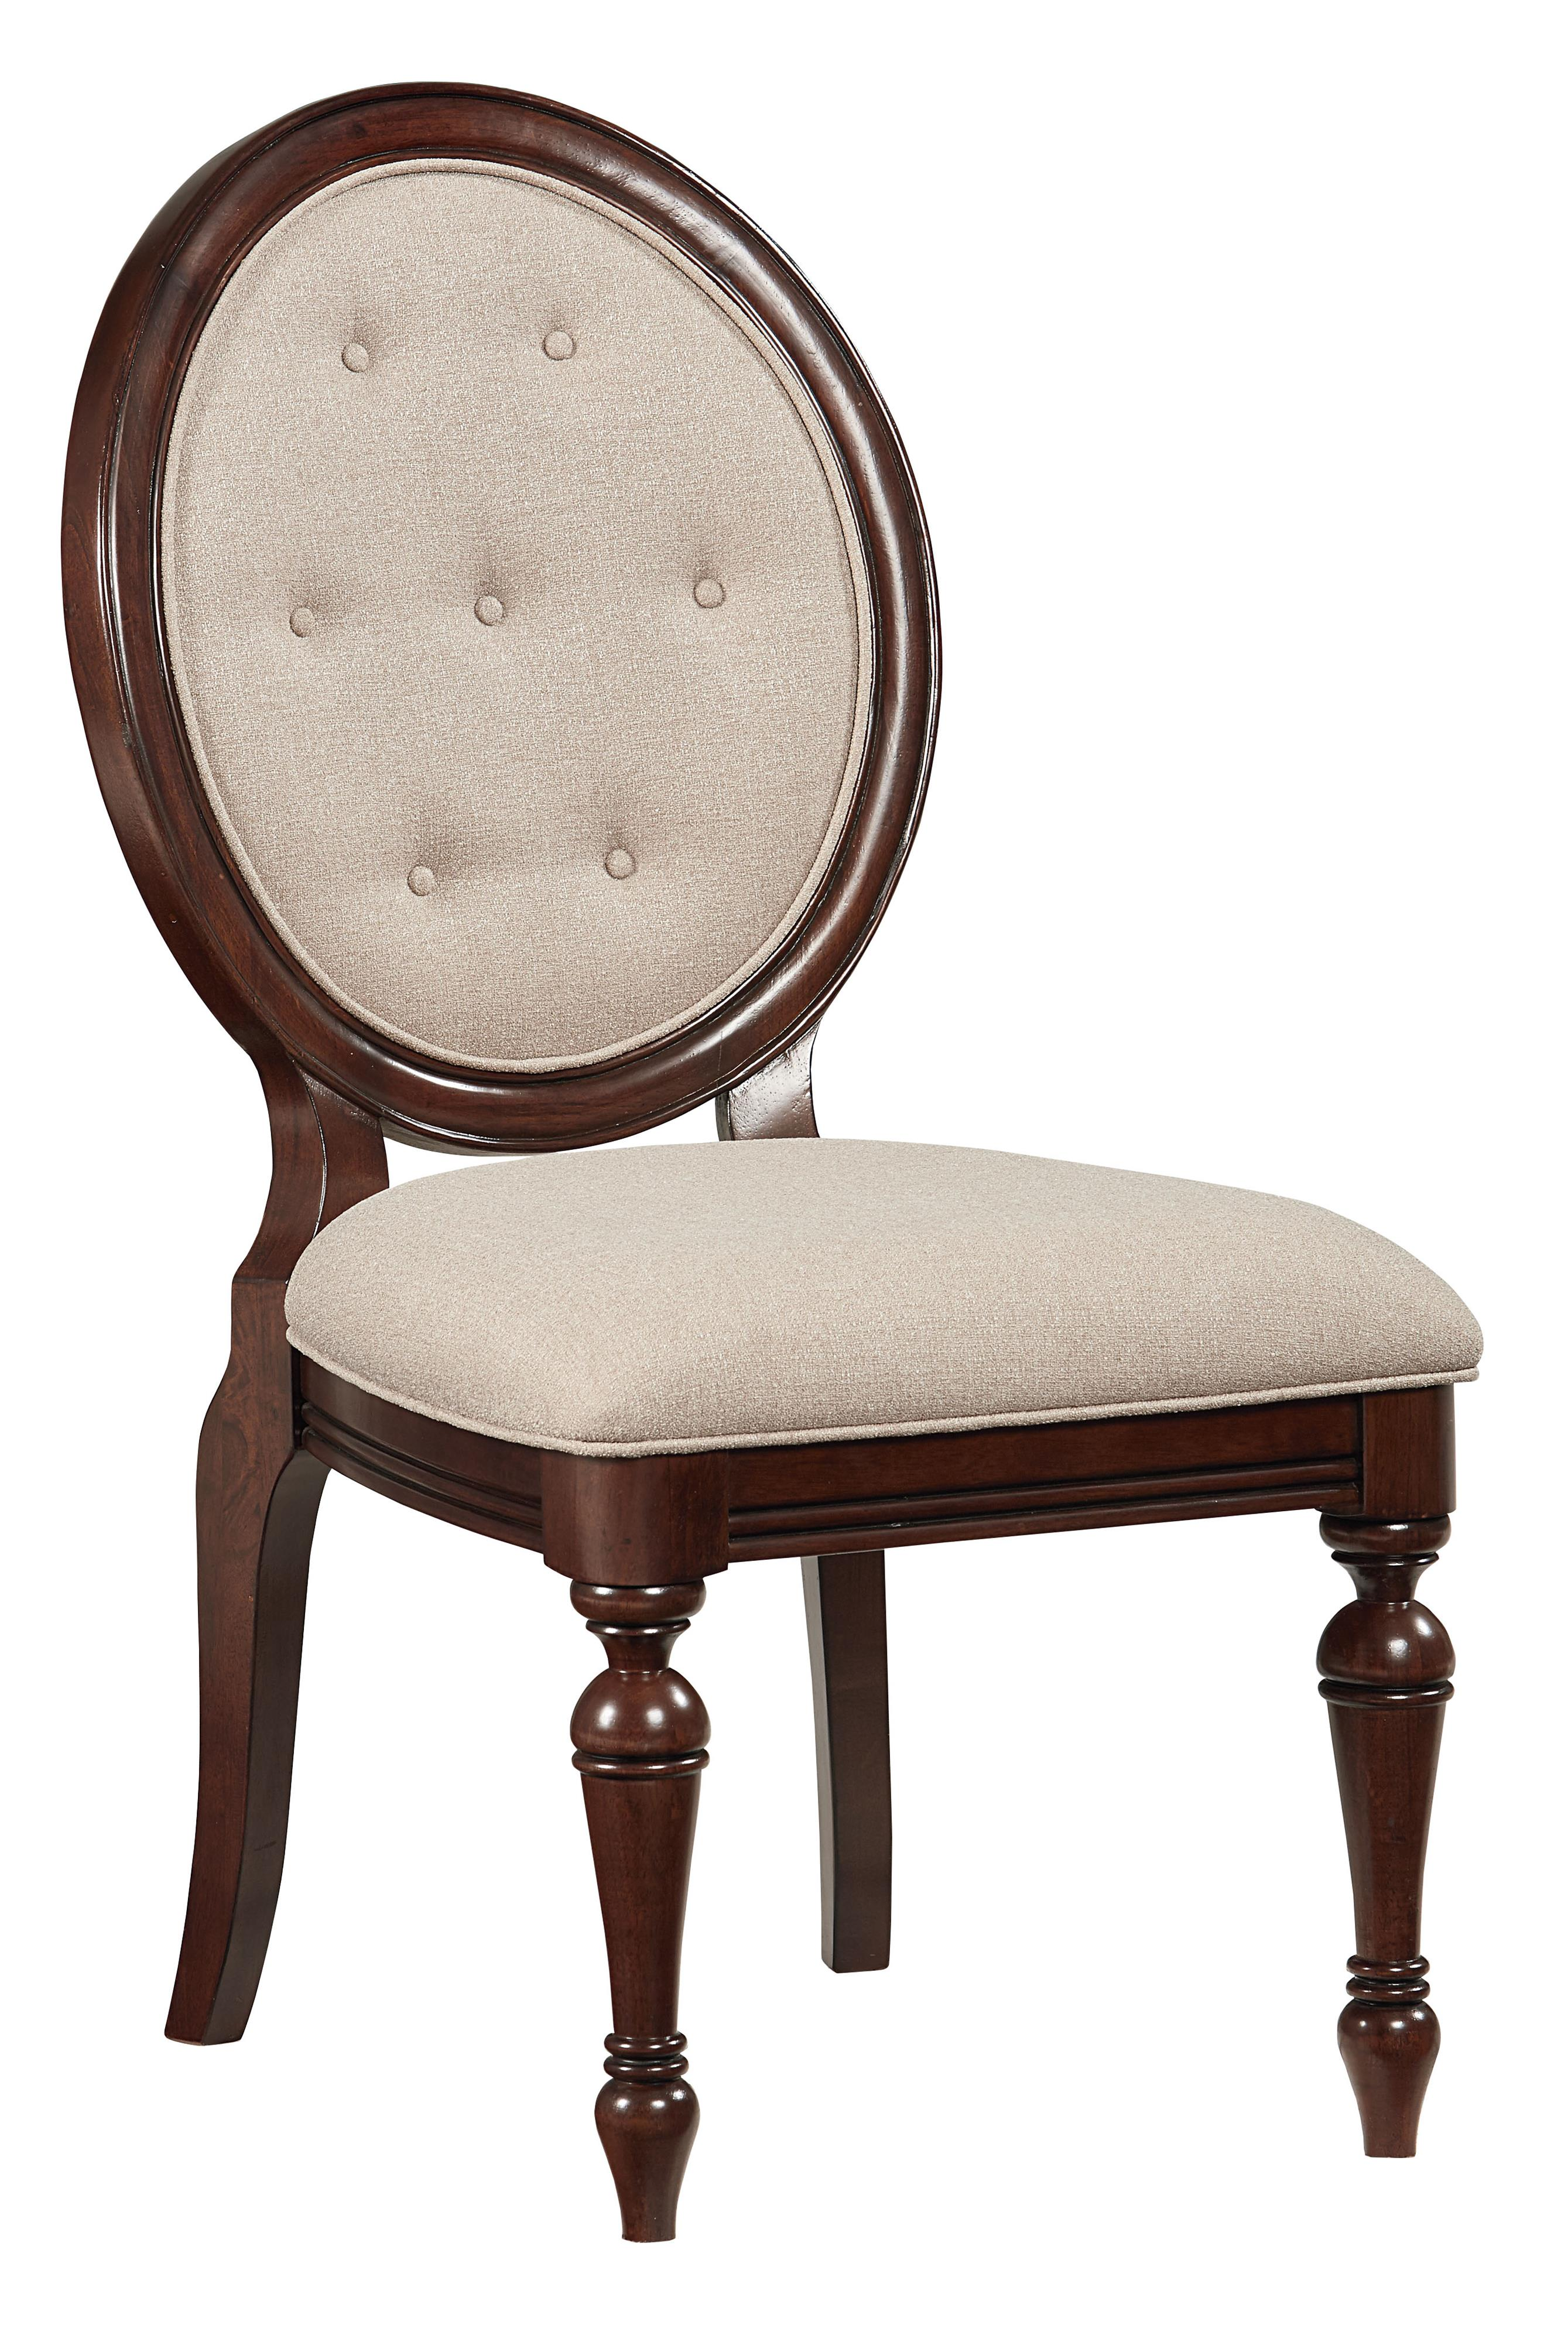 Standard Furniture Carrington Dining Side Chair             - Item Number: 17024